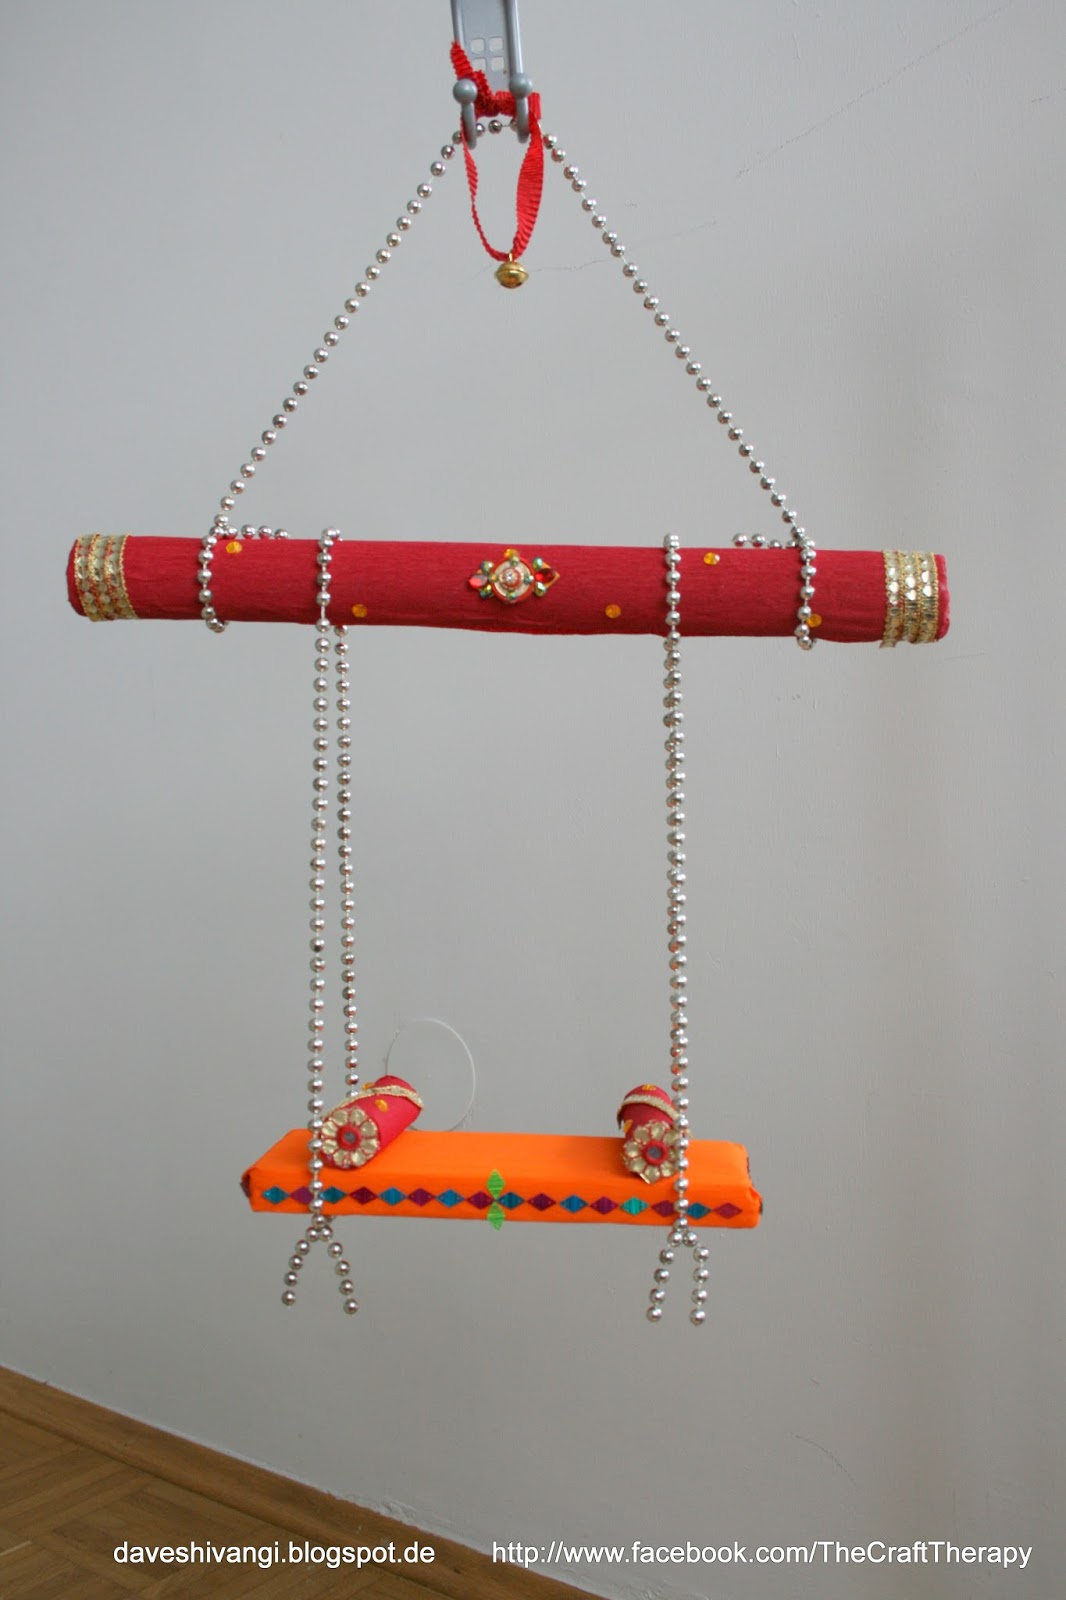 ... of jhula/cradle I prepared for my Little krishna. I hope you like it